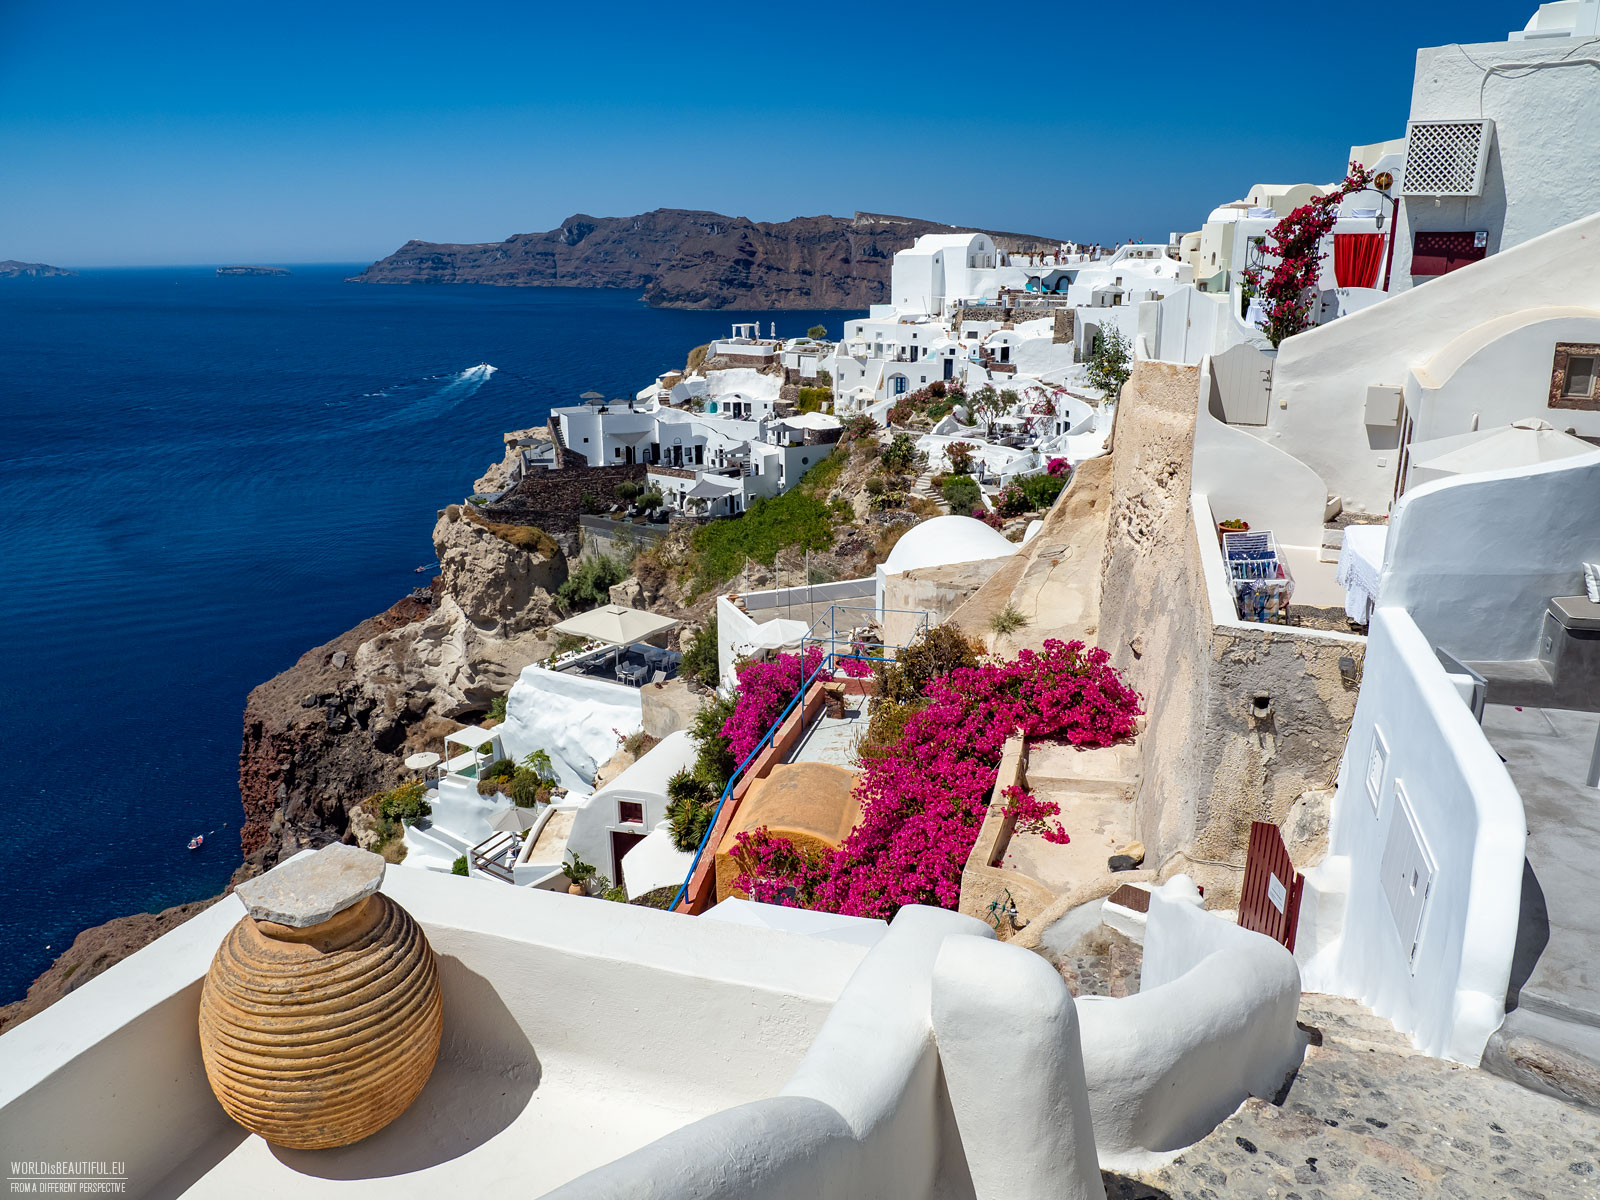 Holidays in the Cyclades